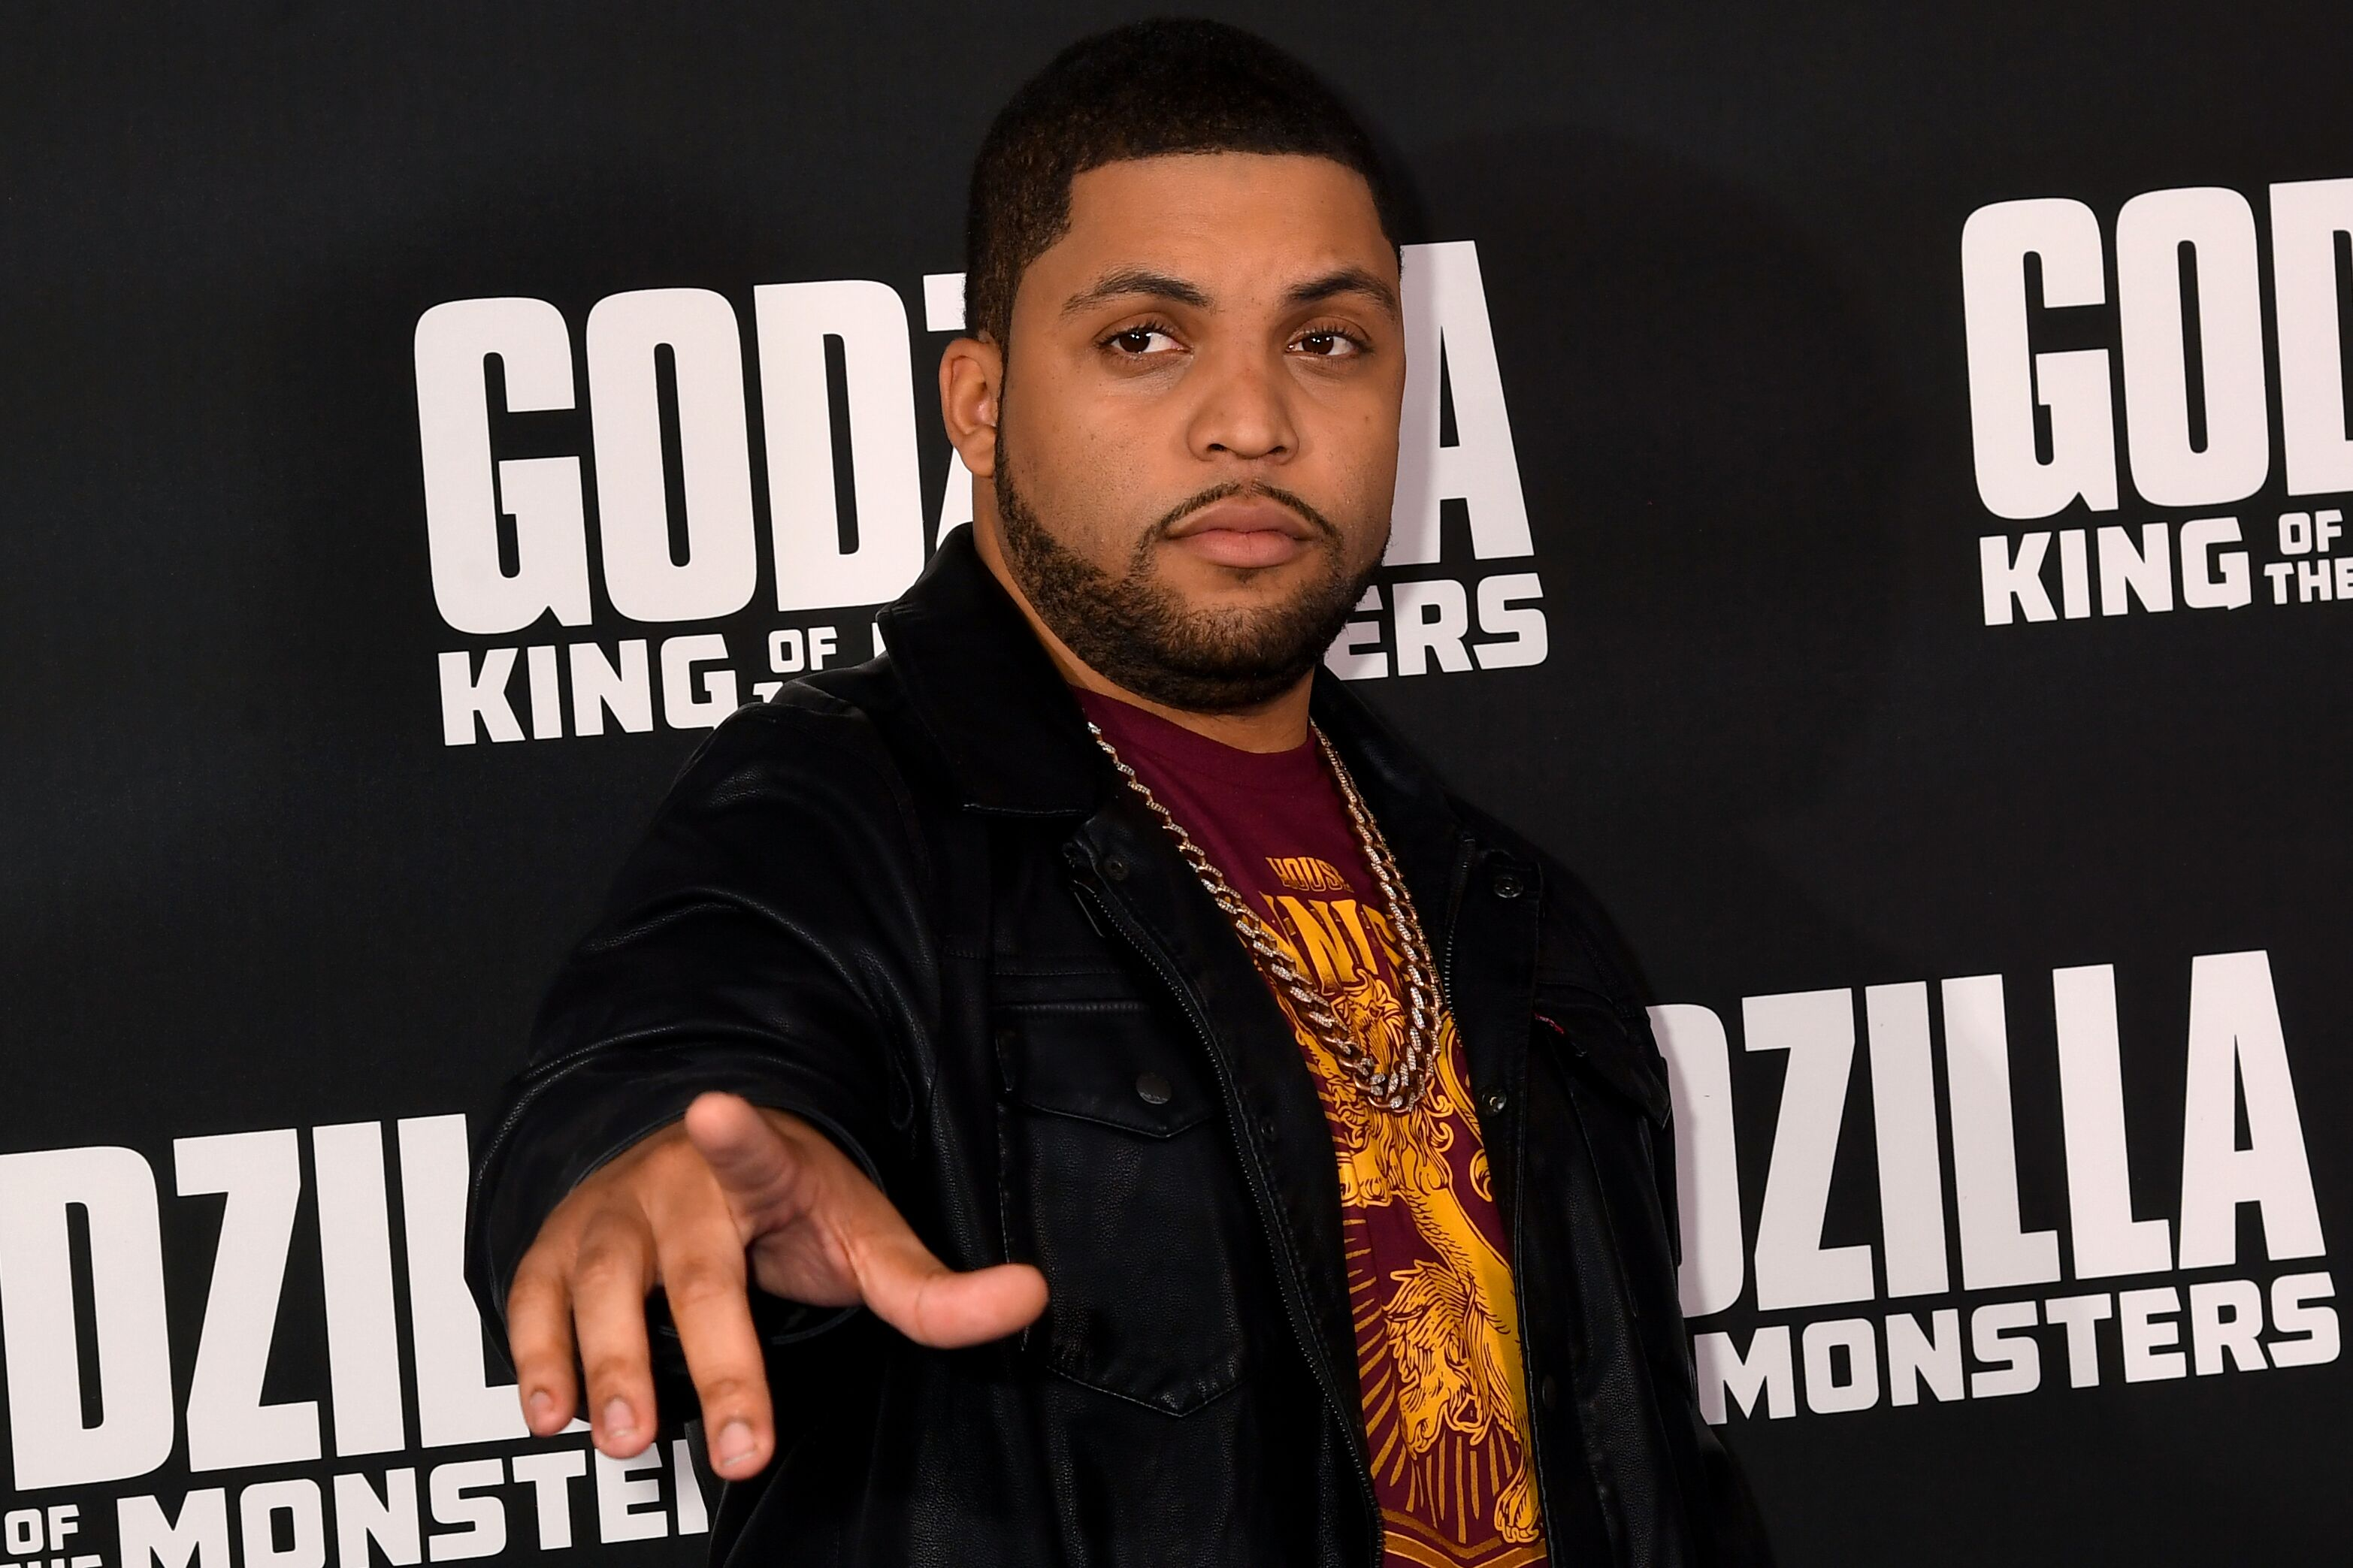 O'Shea Jackson Jr. attends GODZILLA II King of the Monsters at Cineworld Leicester Square on May 28, 2019 | Photo: Getty Images